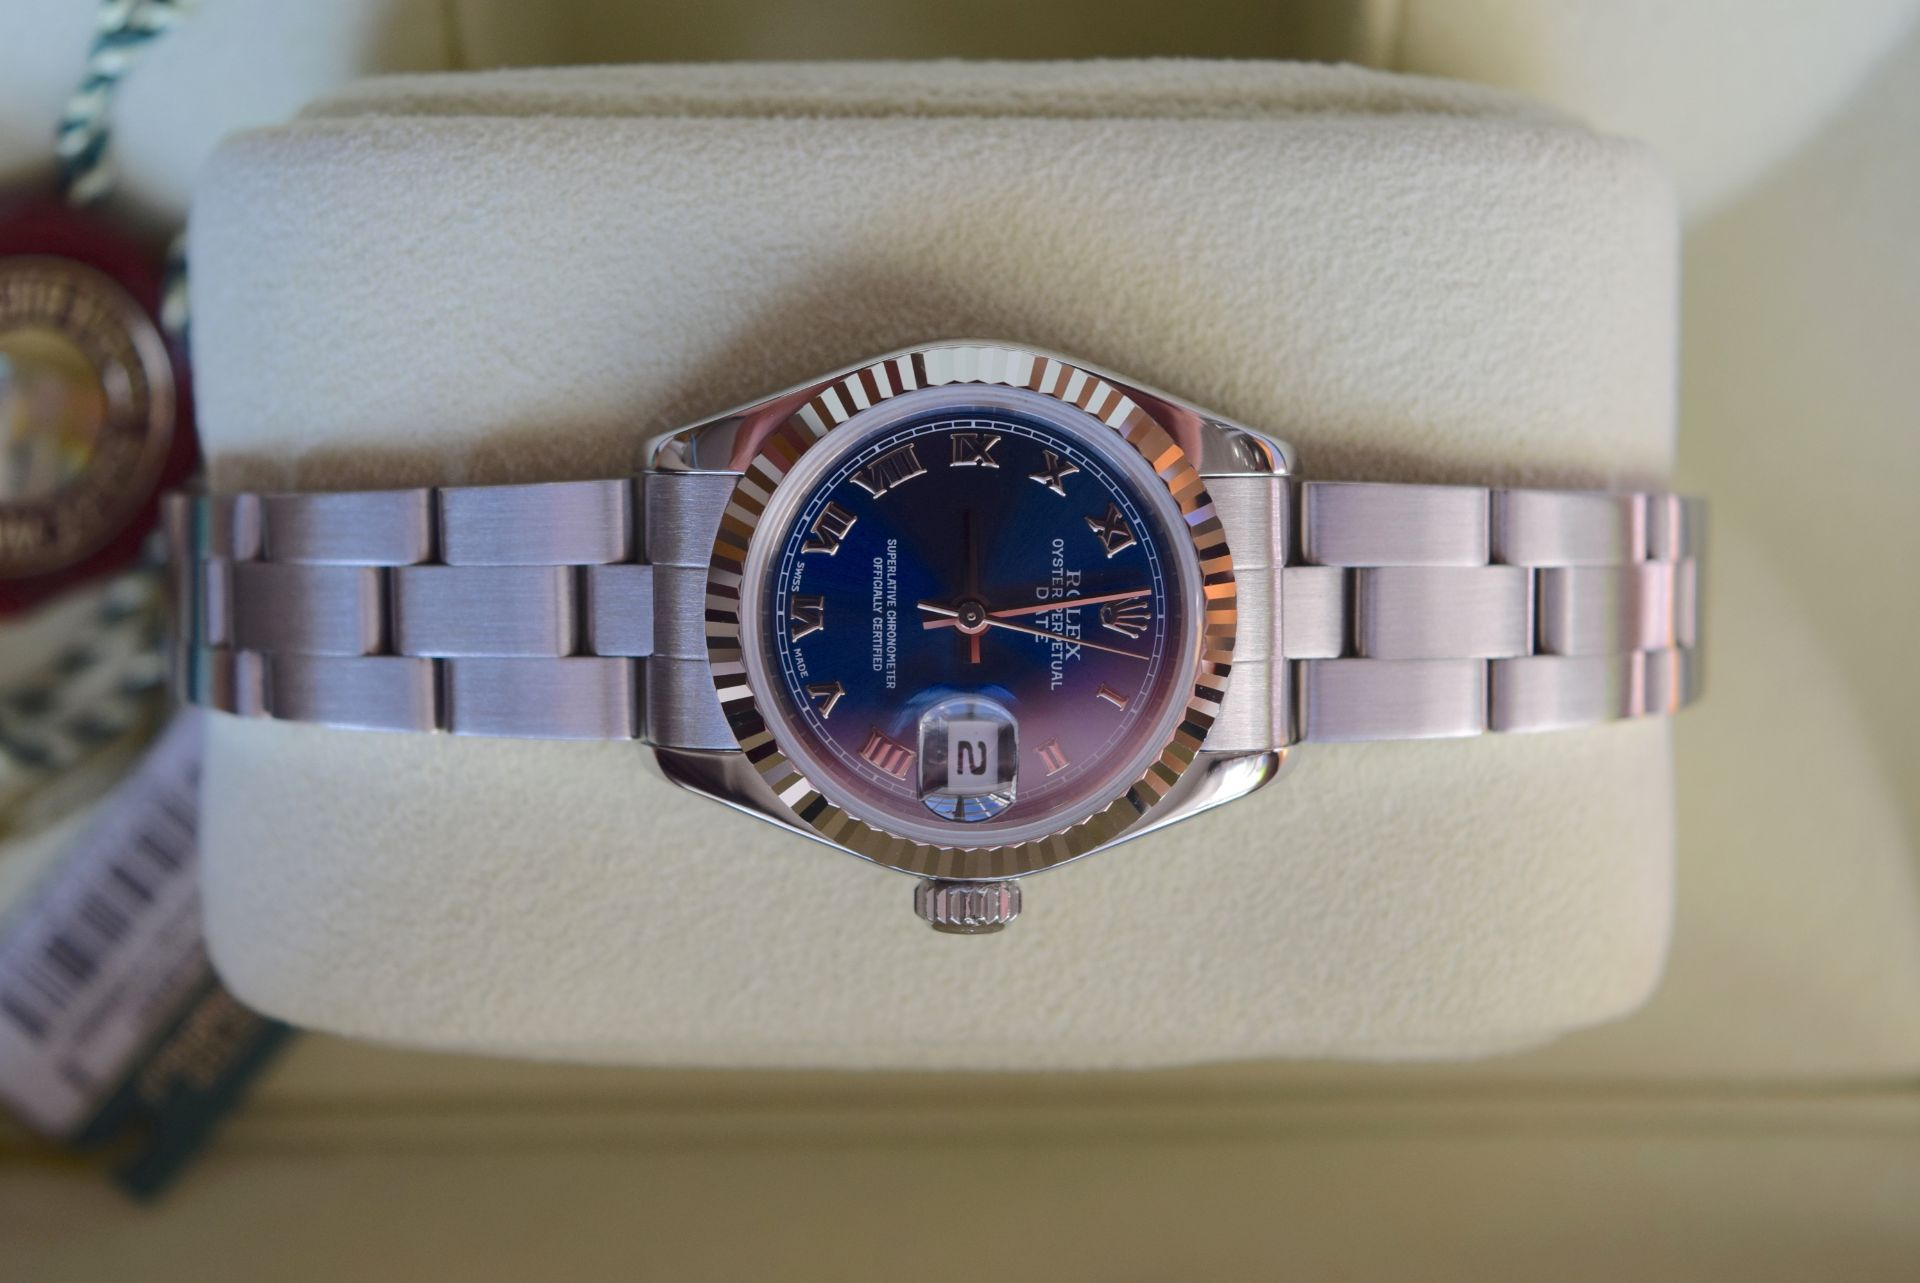 *FULL SET* ROLEX DATEJUST (LADIES) STEEL & 18CT WHITE GOLD - NAVY BLUE 'ROMAN NUMERAL' DIAL - Image 5 of 19